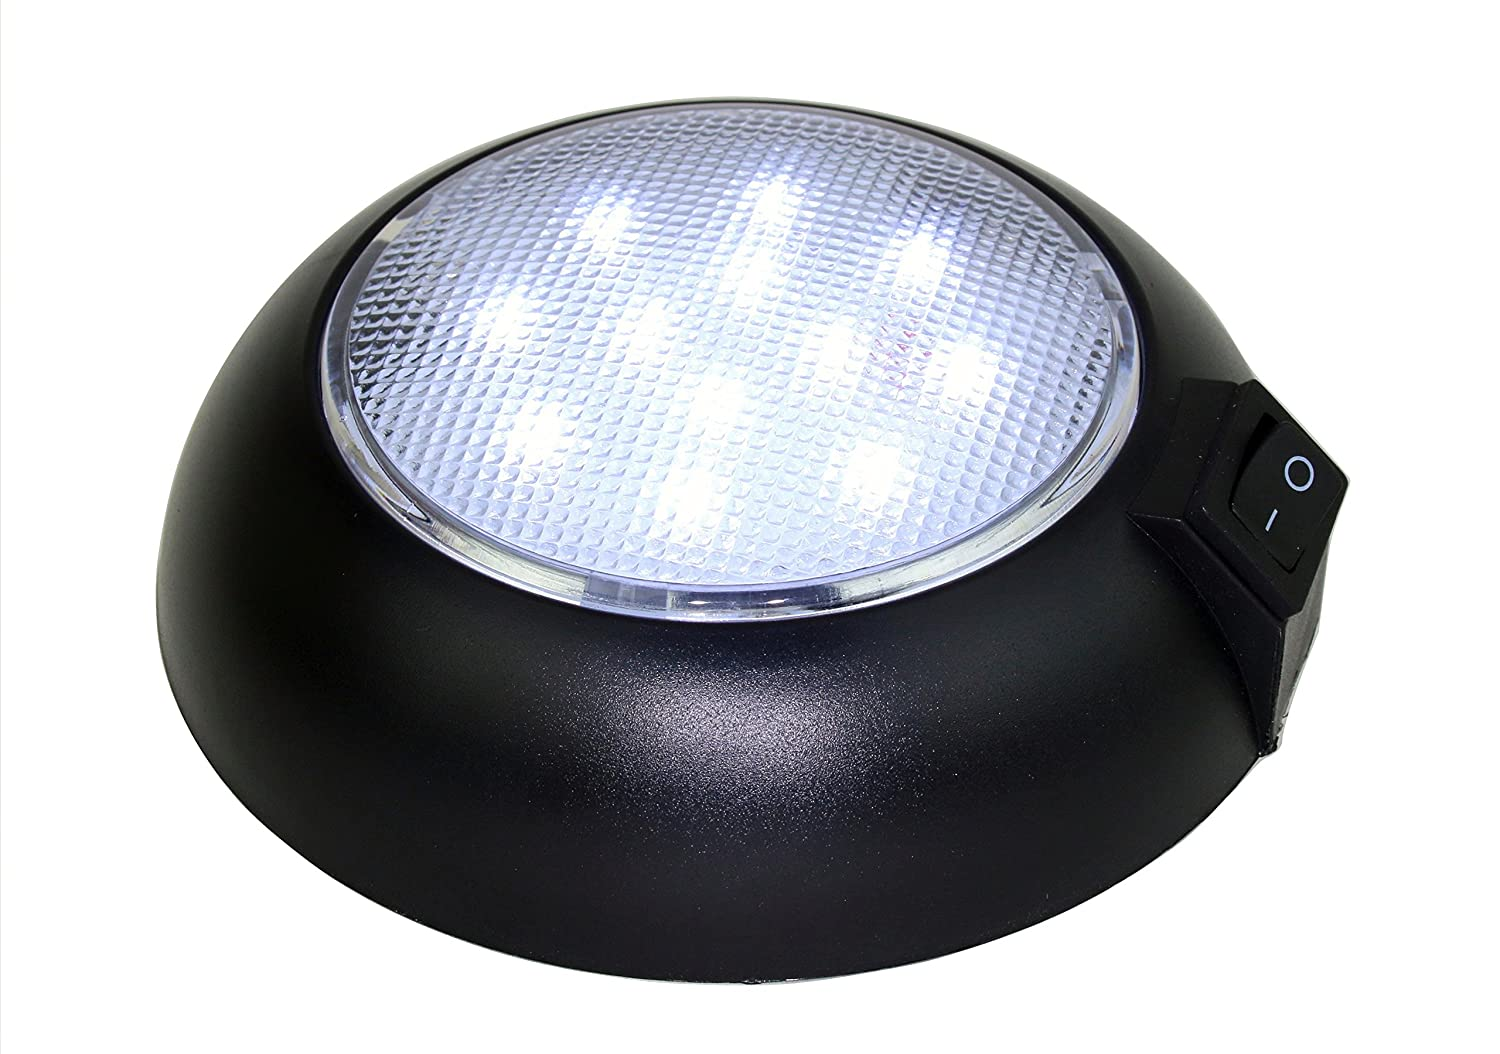 Wonderful Amazon.com: Battery Powered LED Dome Light   Magnetic Or Fixed Mount   High  Power Cool White LED Downlight For Home, Auto, Truck, RV, Boat And  Aircraft: ...